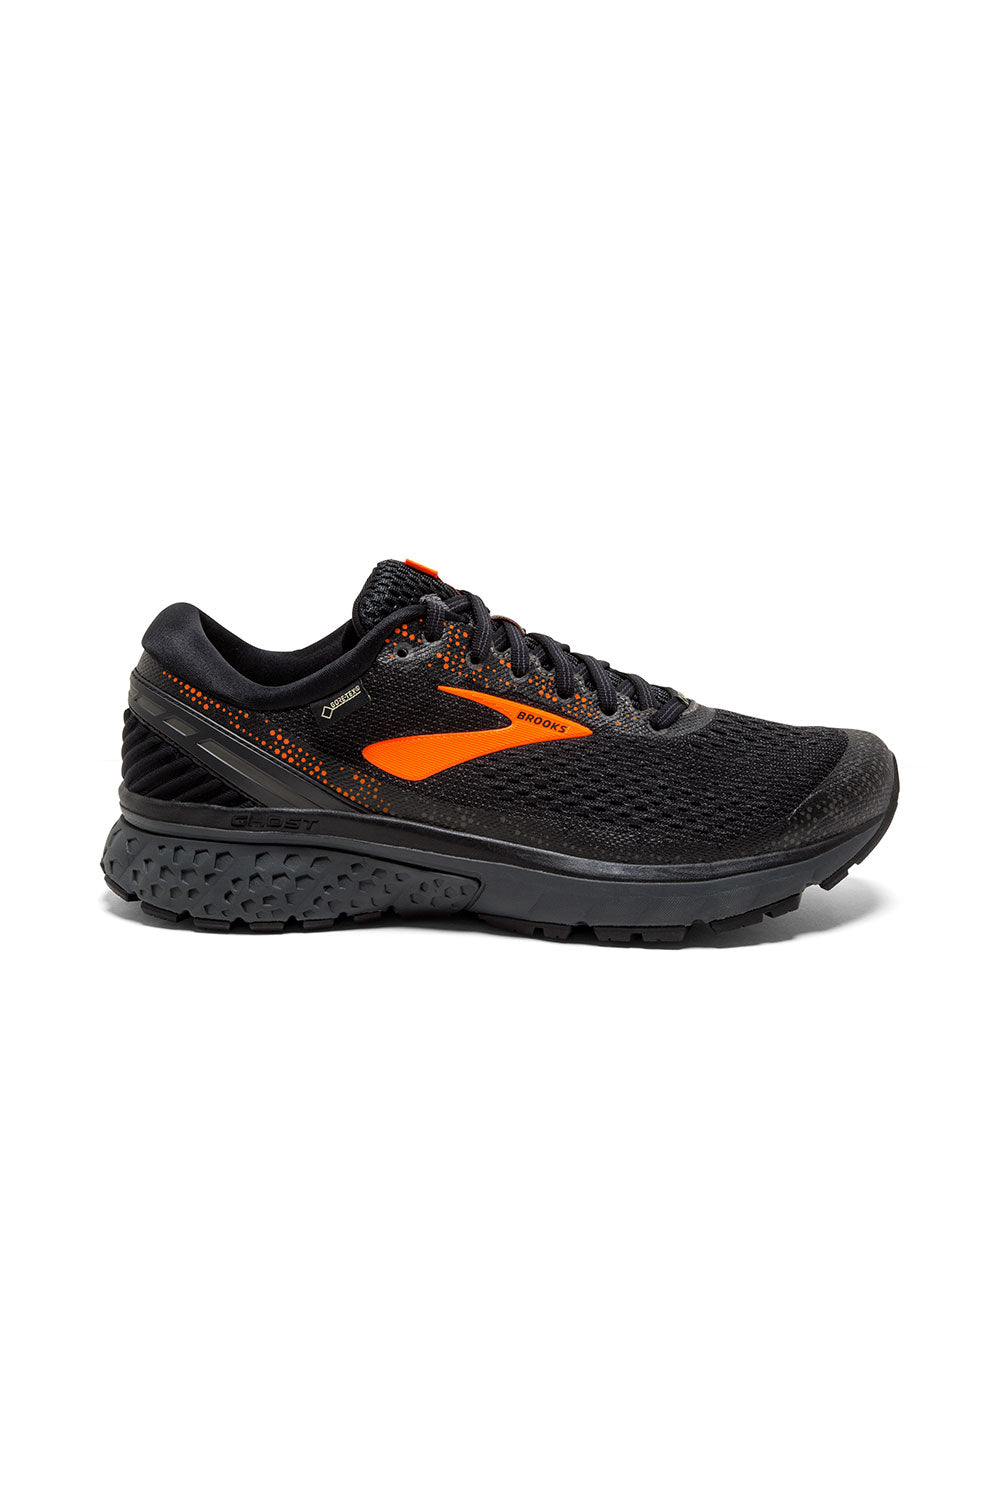 0640e73281db6 Men s Ghost 11 GTX Running Shoe - Black Orange Ebony – Gazelle Sports